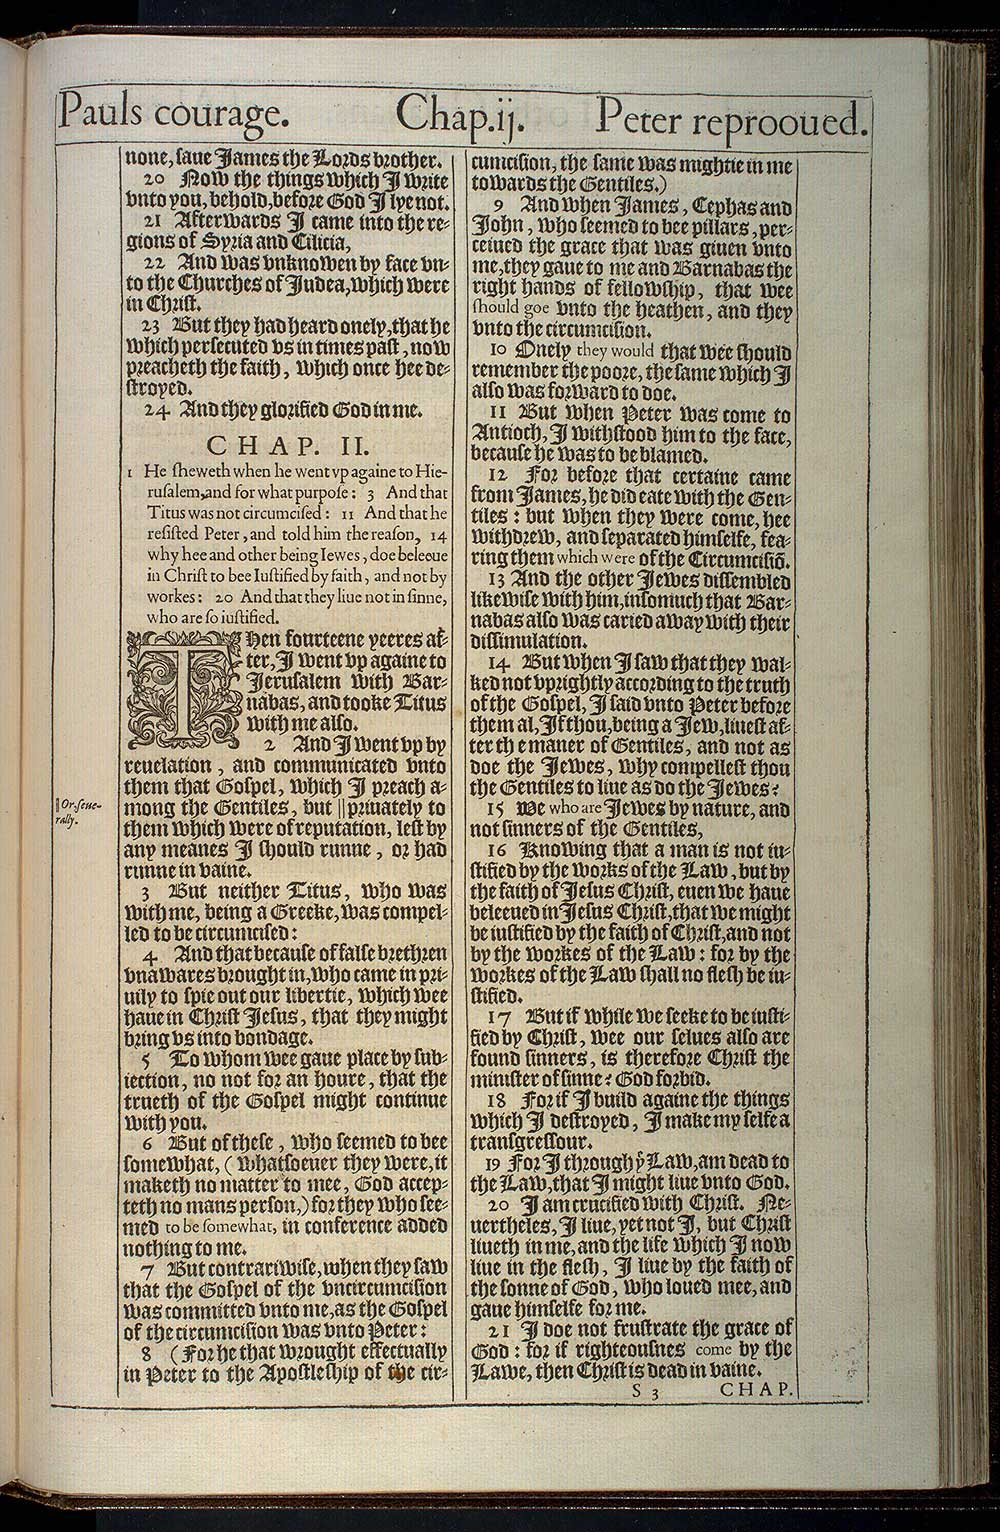 Galatians Chapter 1 Original 1611 Bible Scan